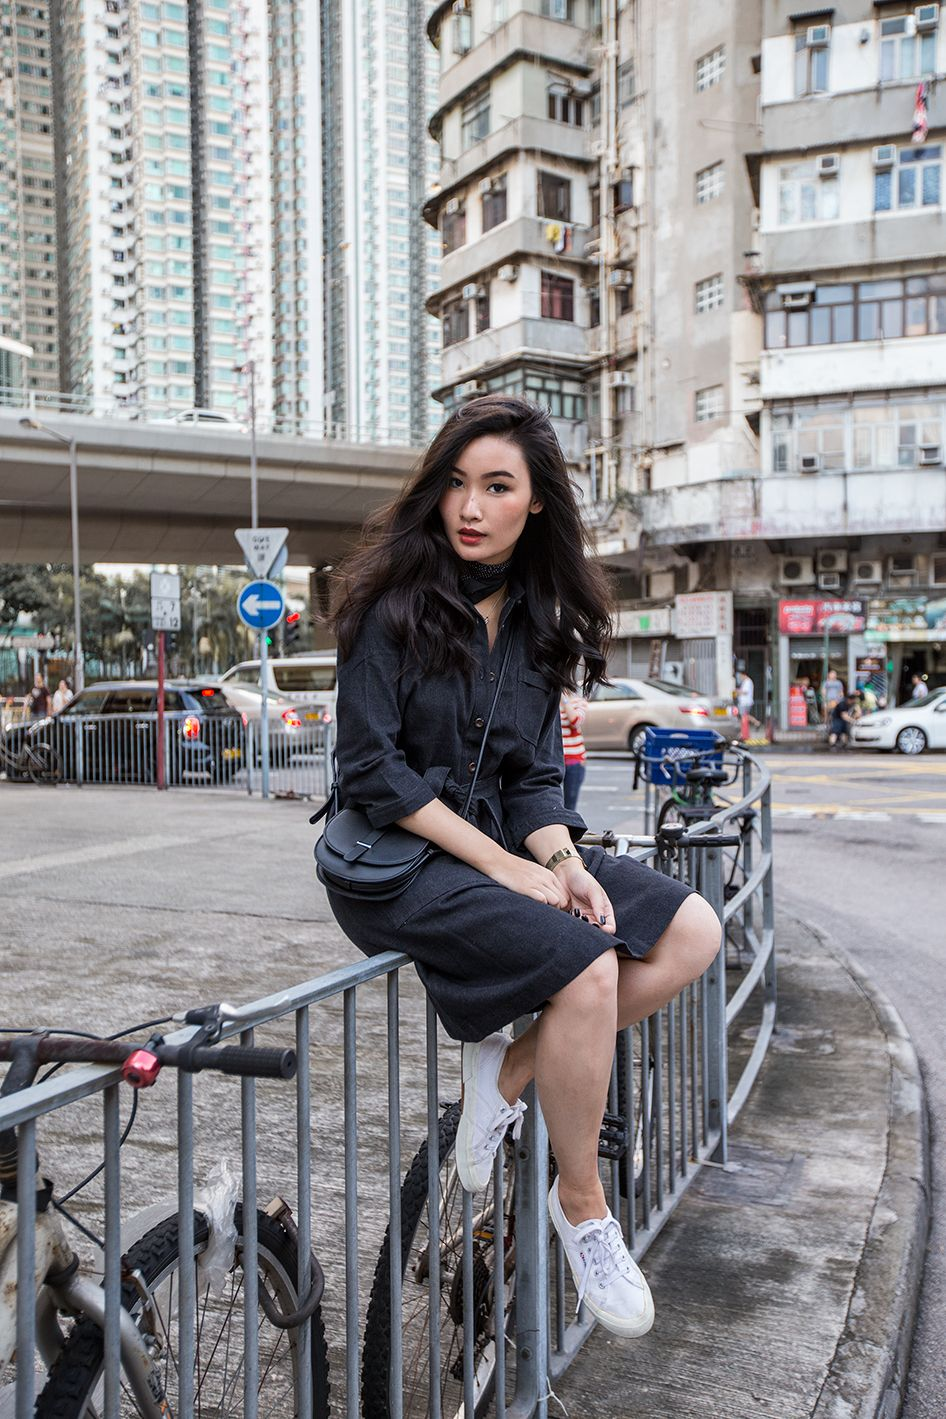 A Hong Kong Minute Tlnique Tosen Inspiration Pinterest Ootd Street Styles And Street